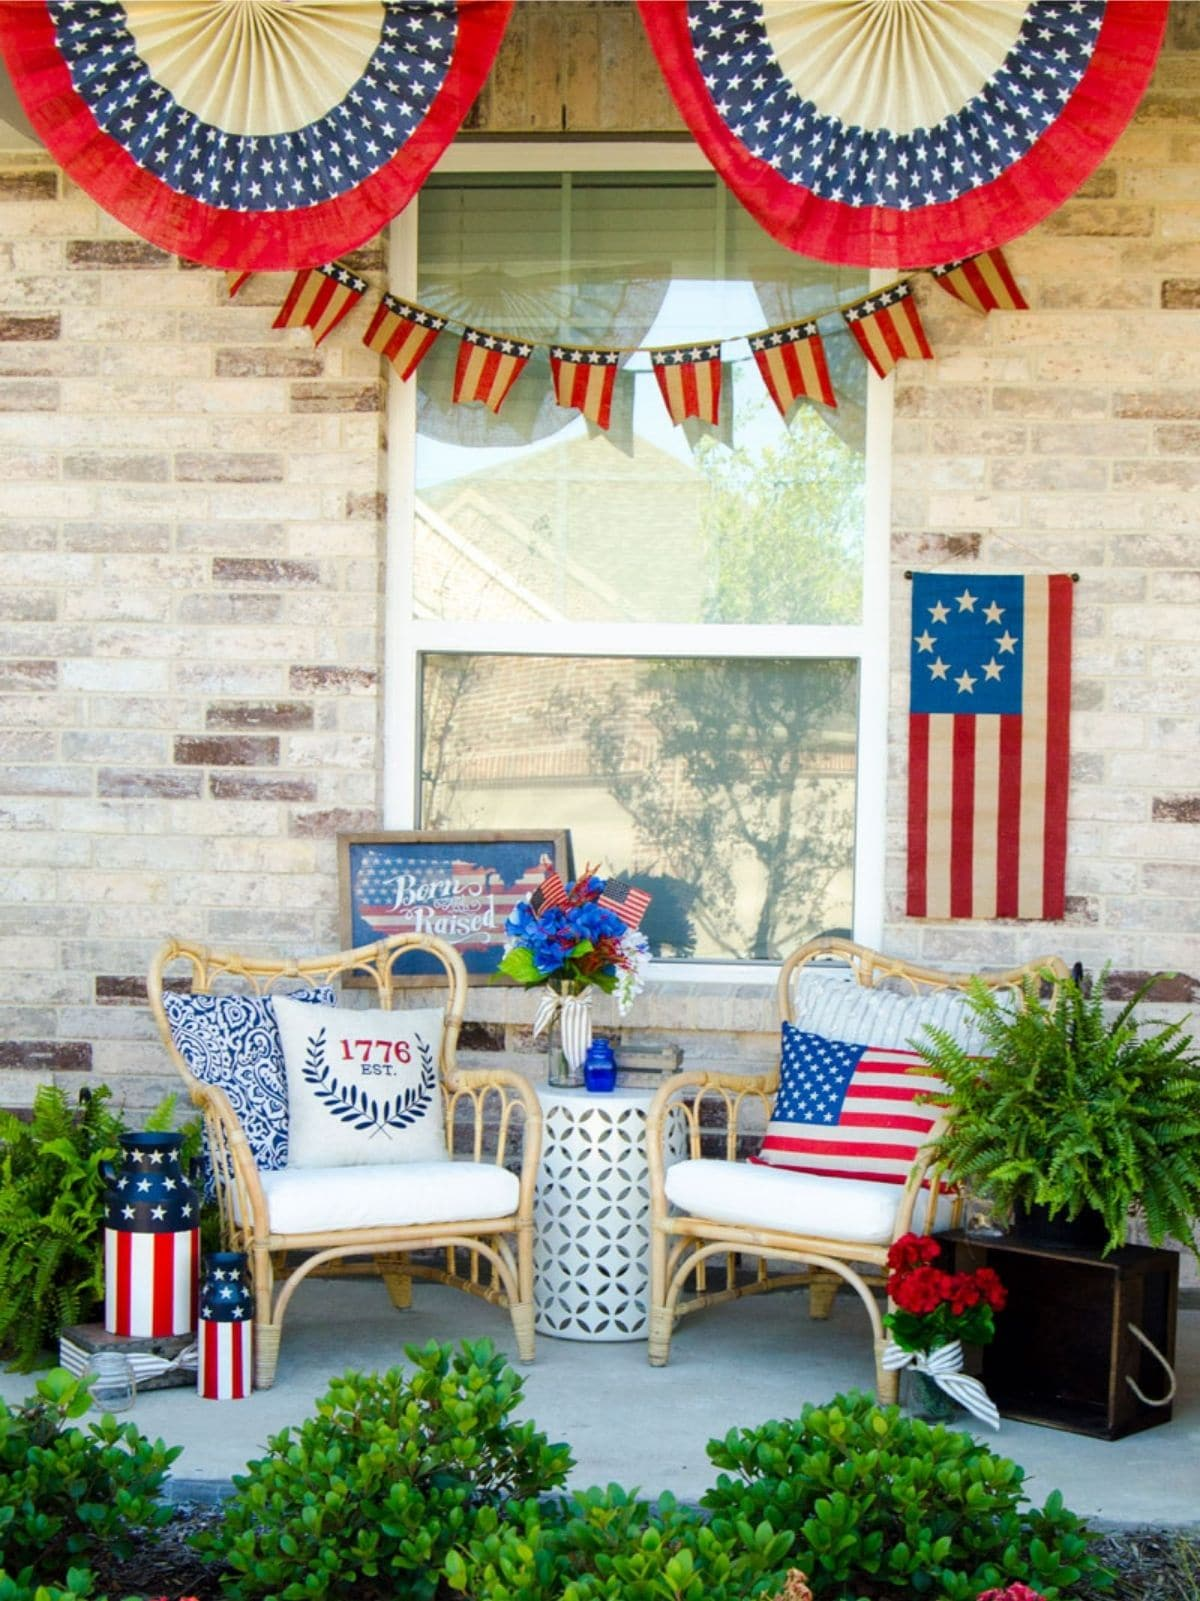 porch with wicker chairs, patriotic throw pillows and flags